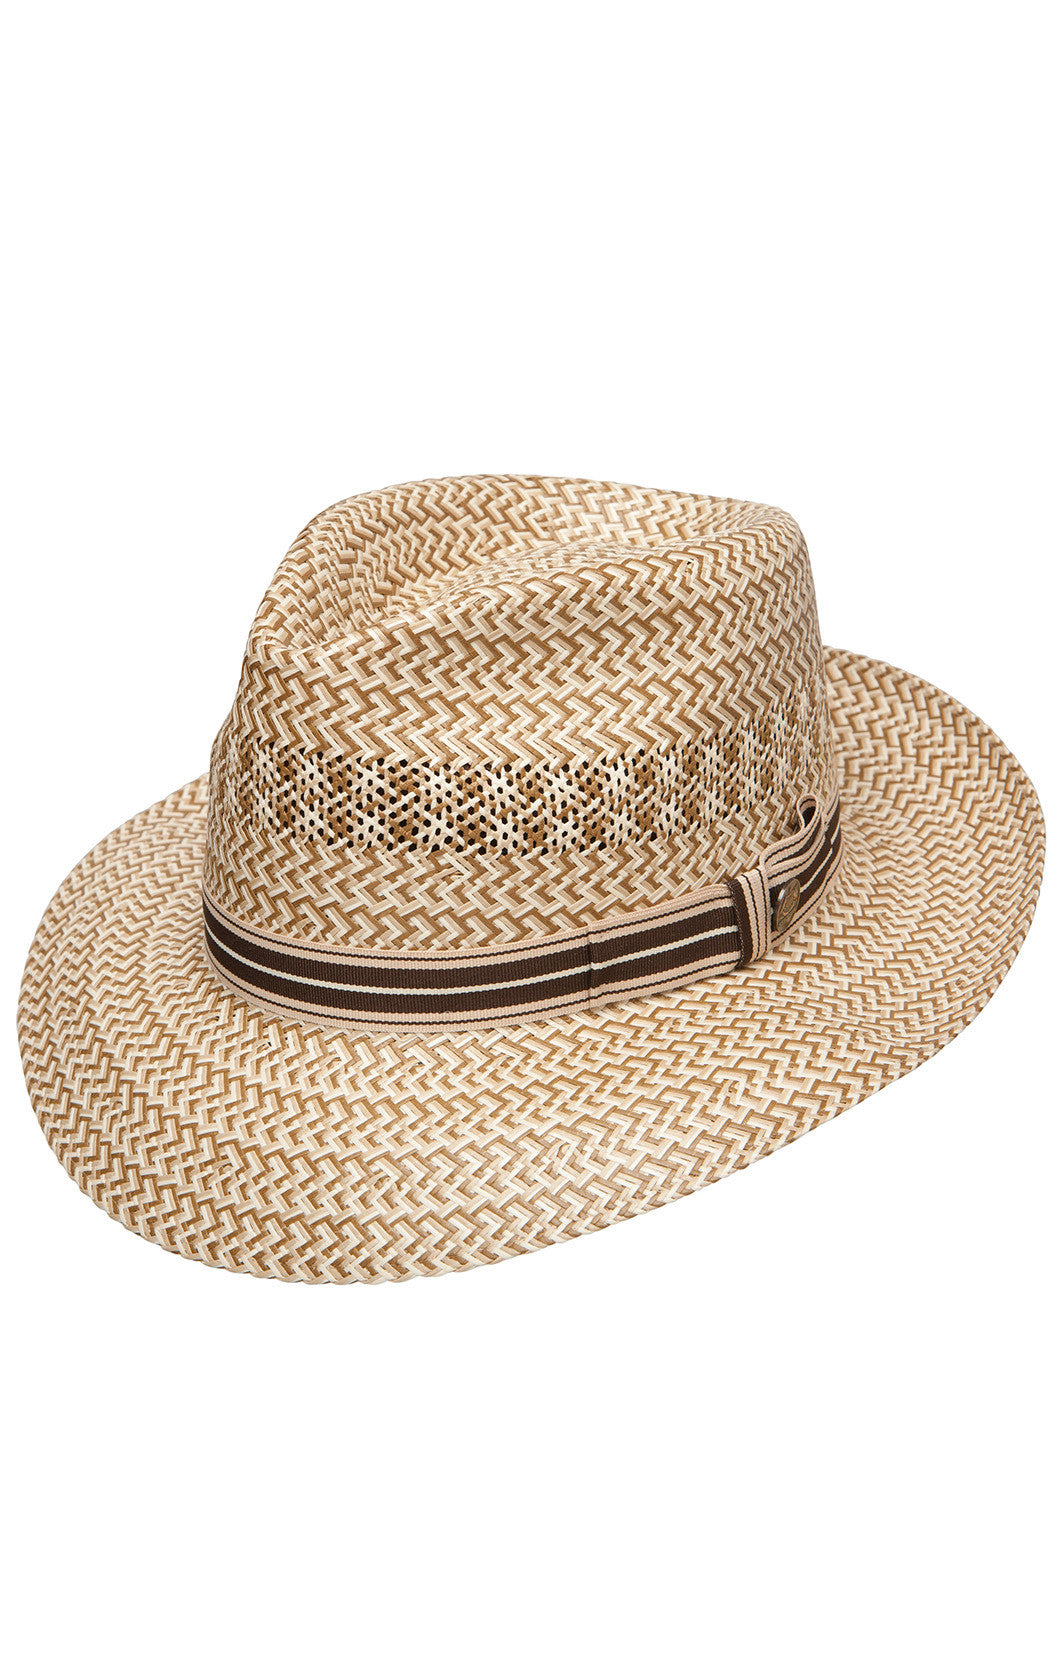 mens straw hats, stetson, mens summer hat, panama hat